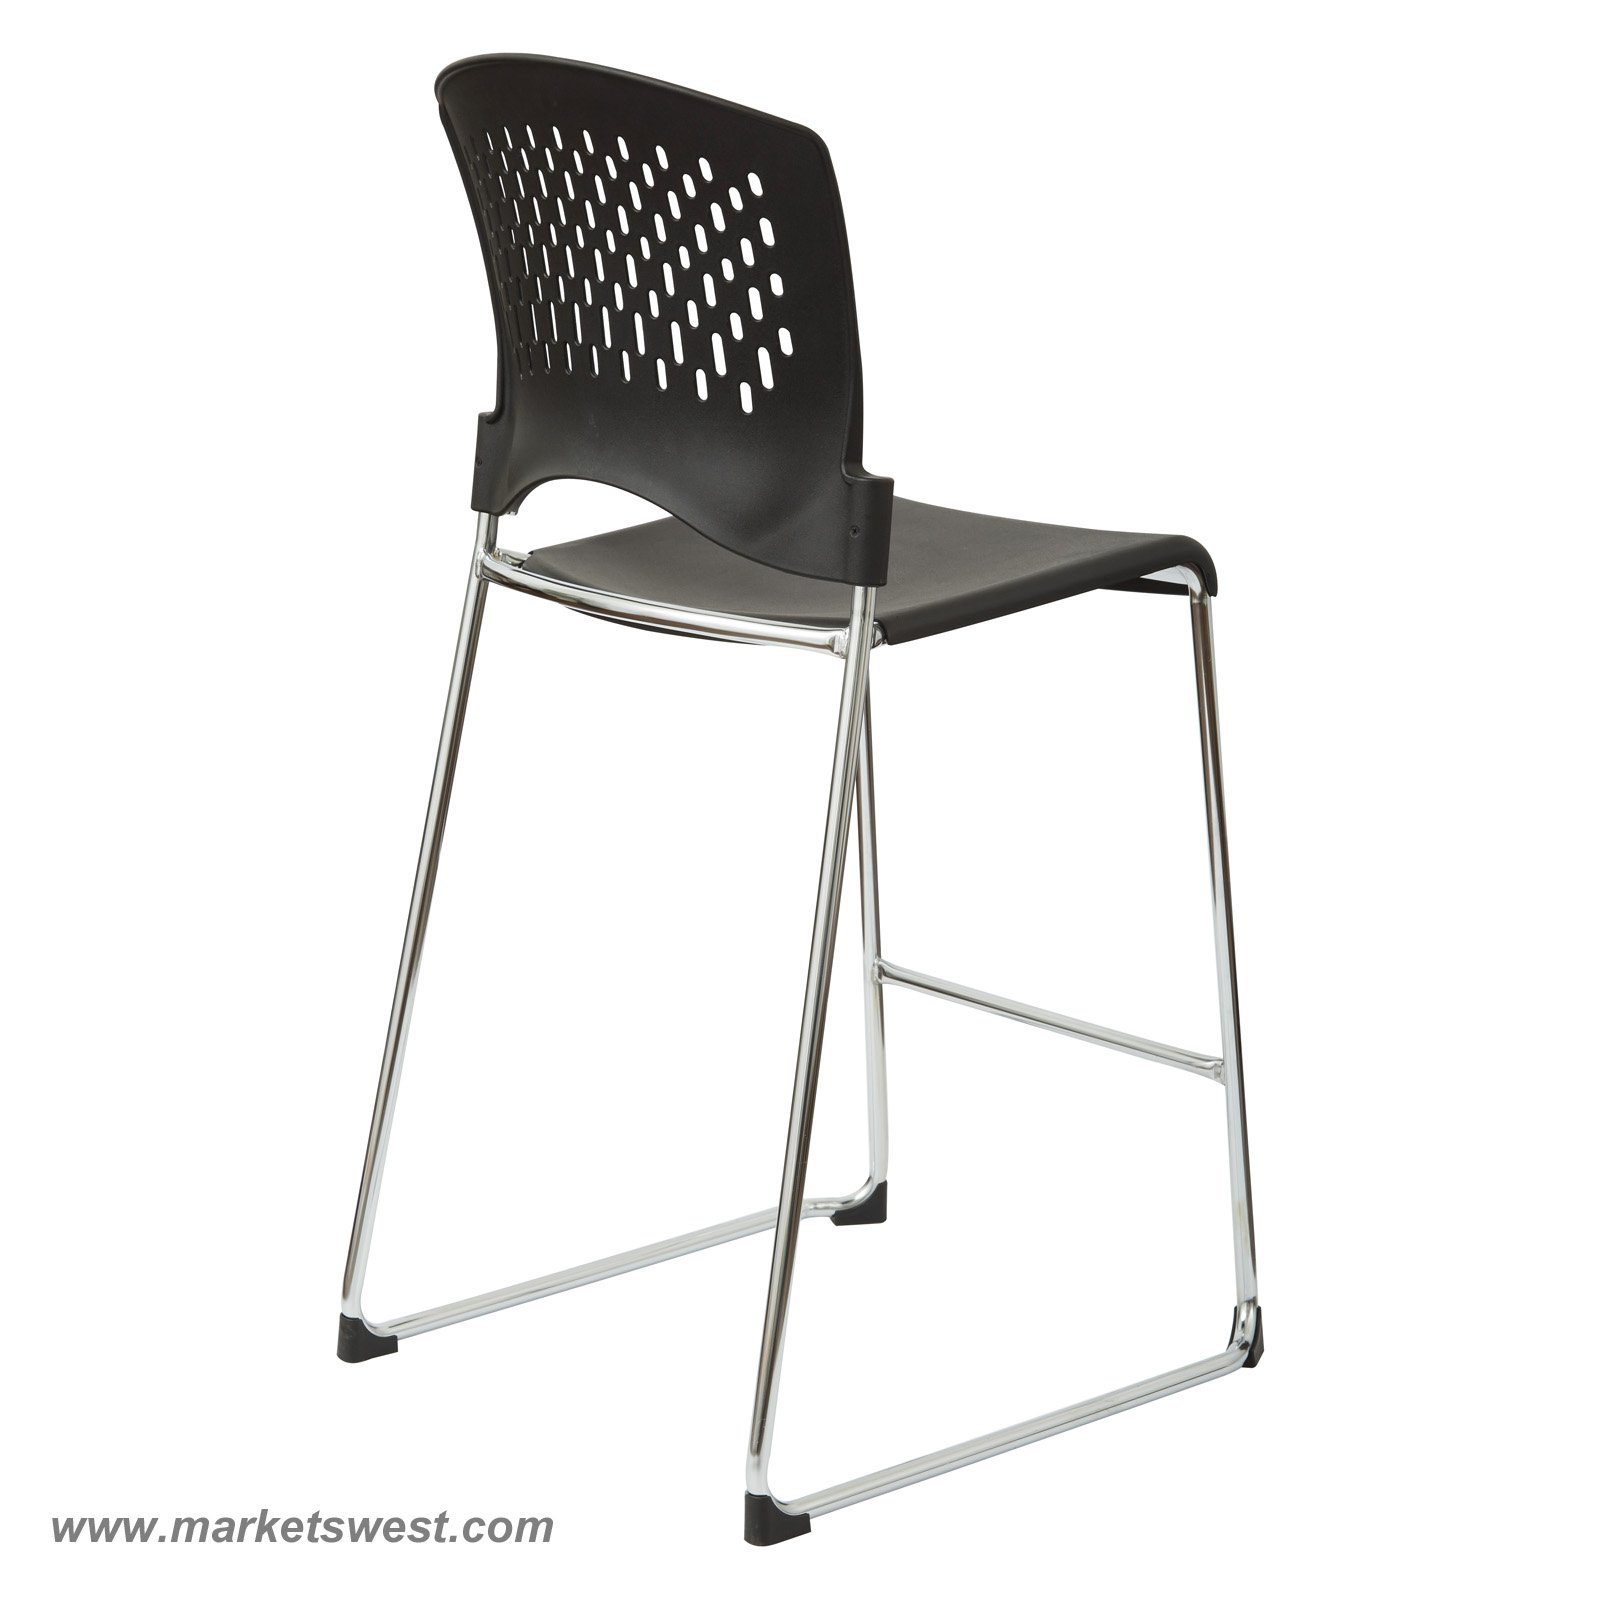 sc 1 st  Markets West Office Furniture & Tall Stacking Chair/Stool with Plastic Seat and Back (Chrome Frame) islam-shia.org